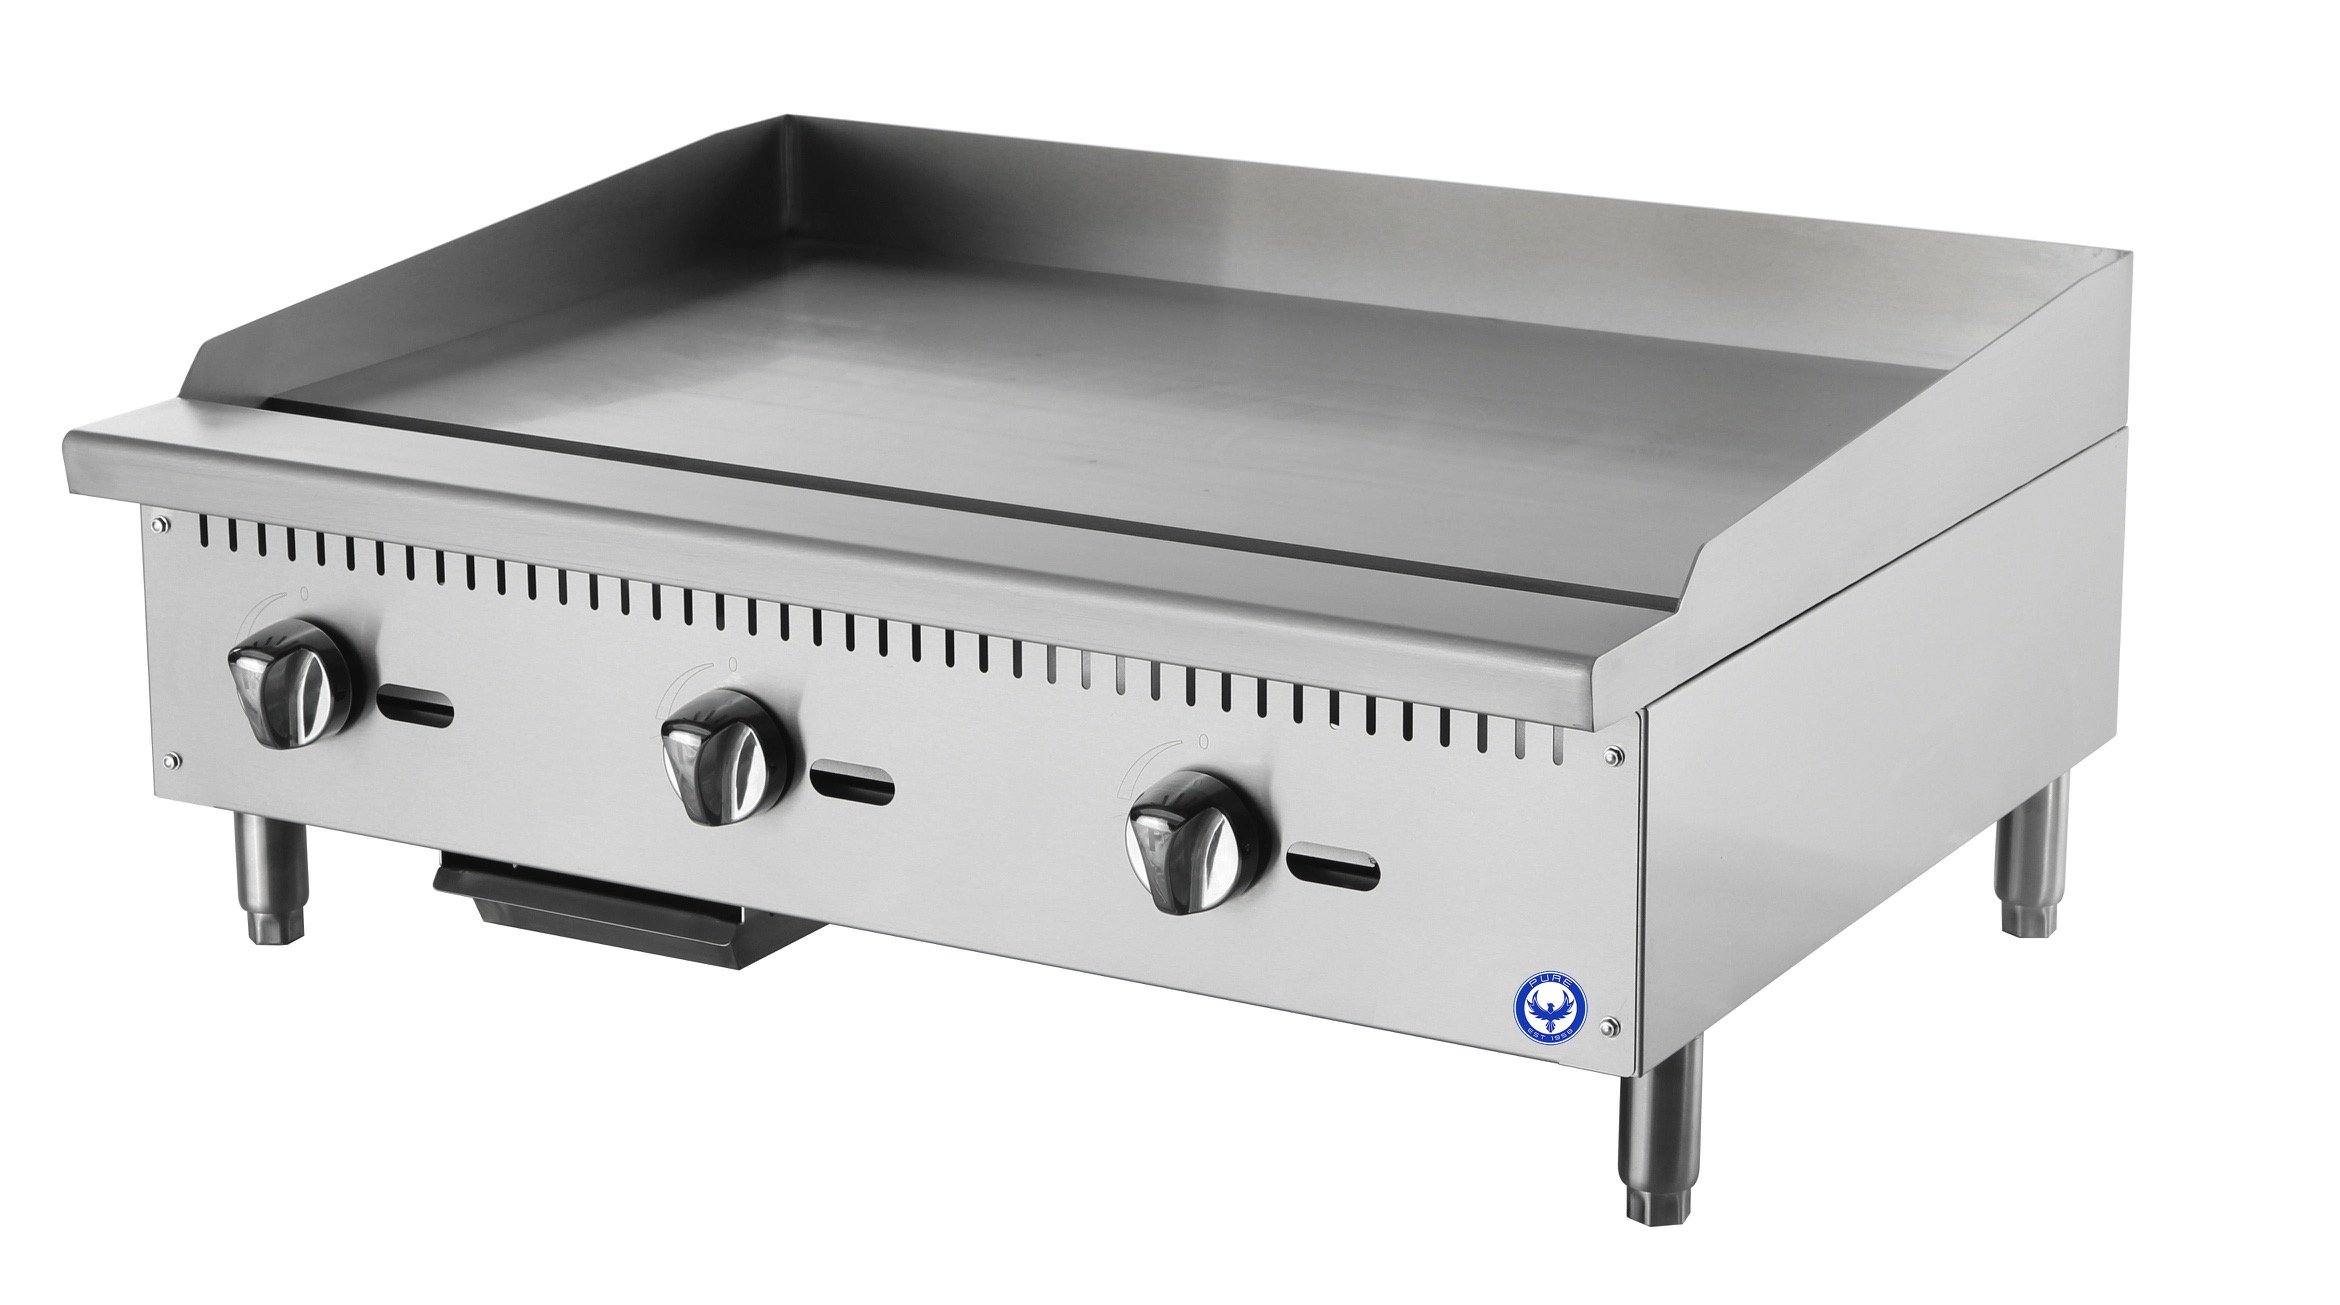 PUREFG-36P 36″ Commercial Flat Top Grill Countertop Griddle (LP ...